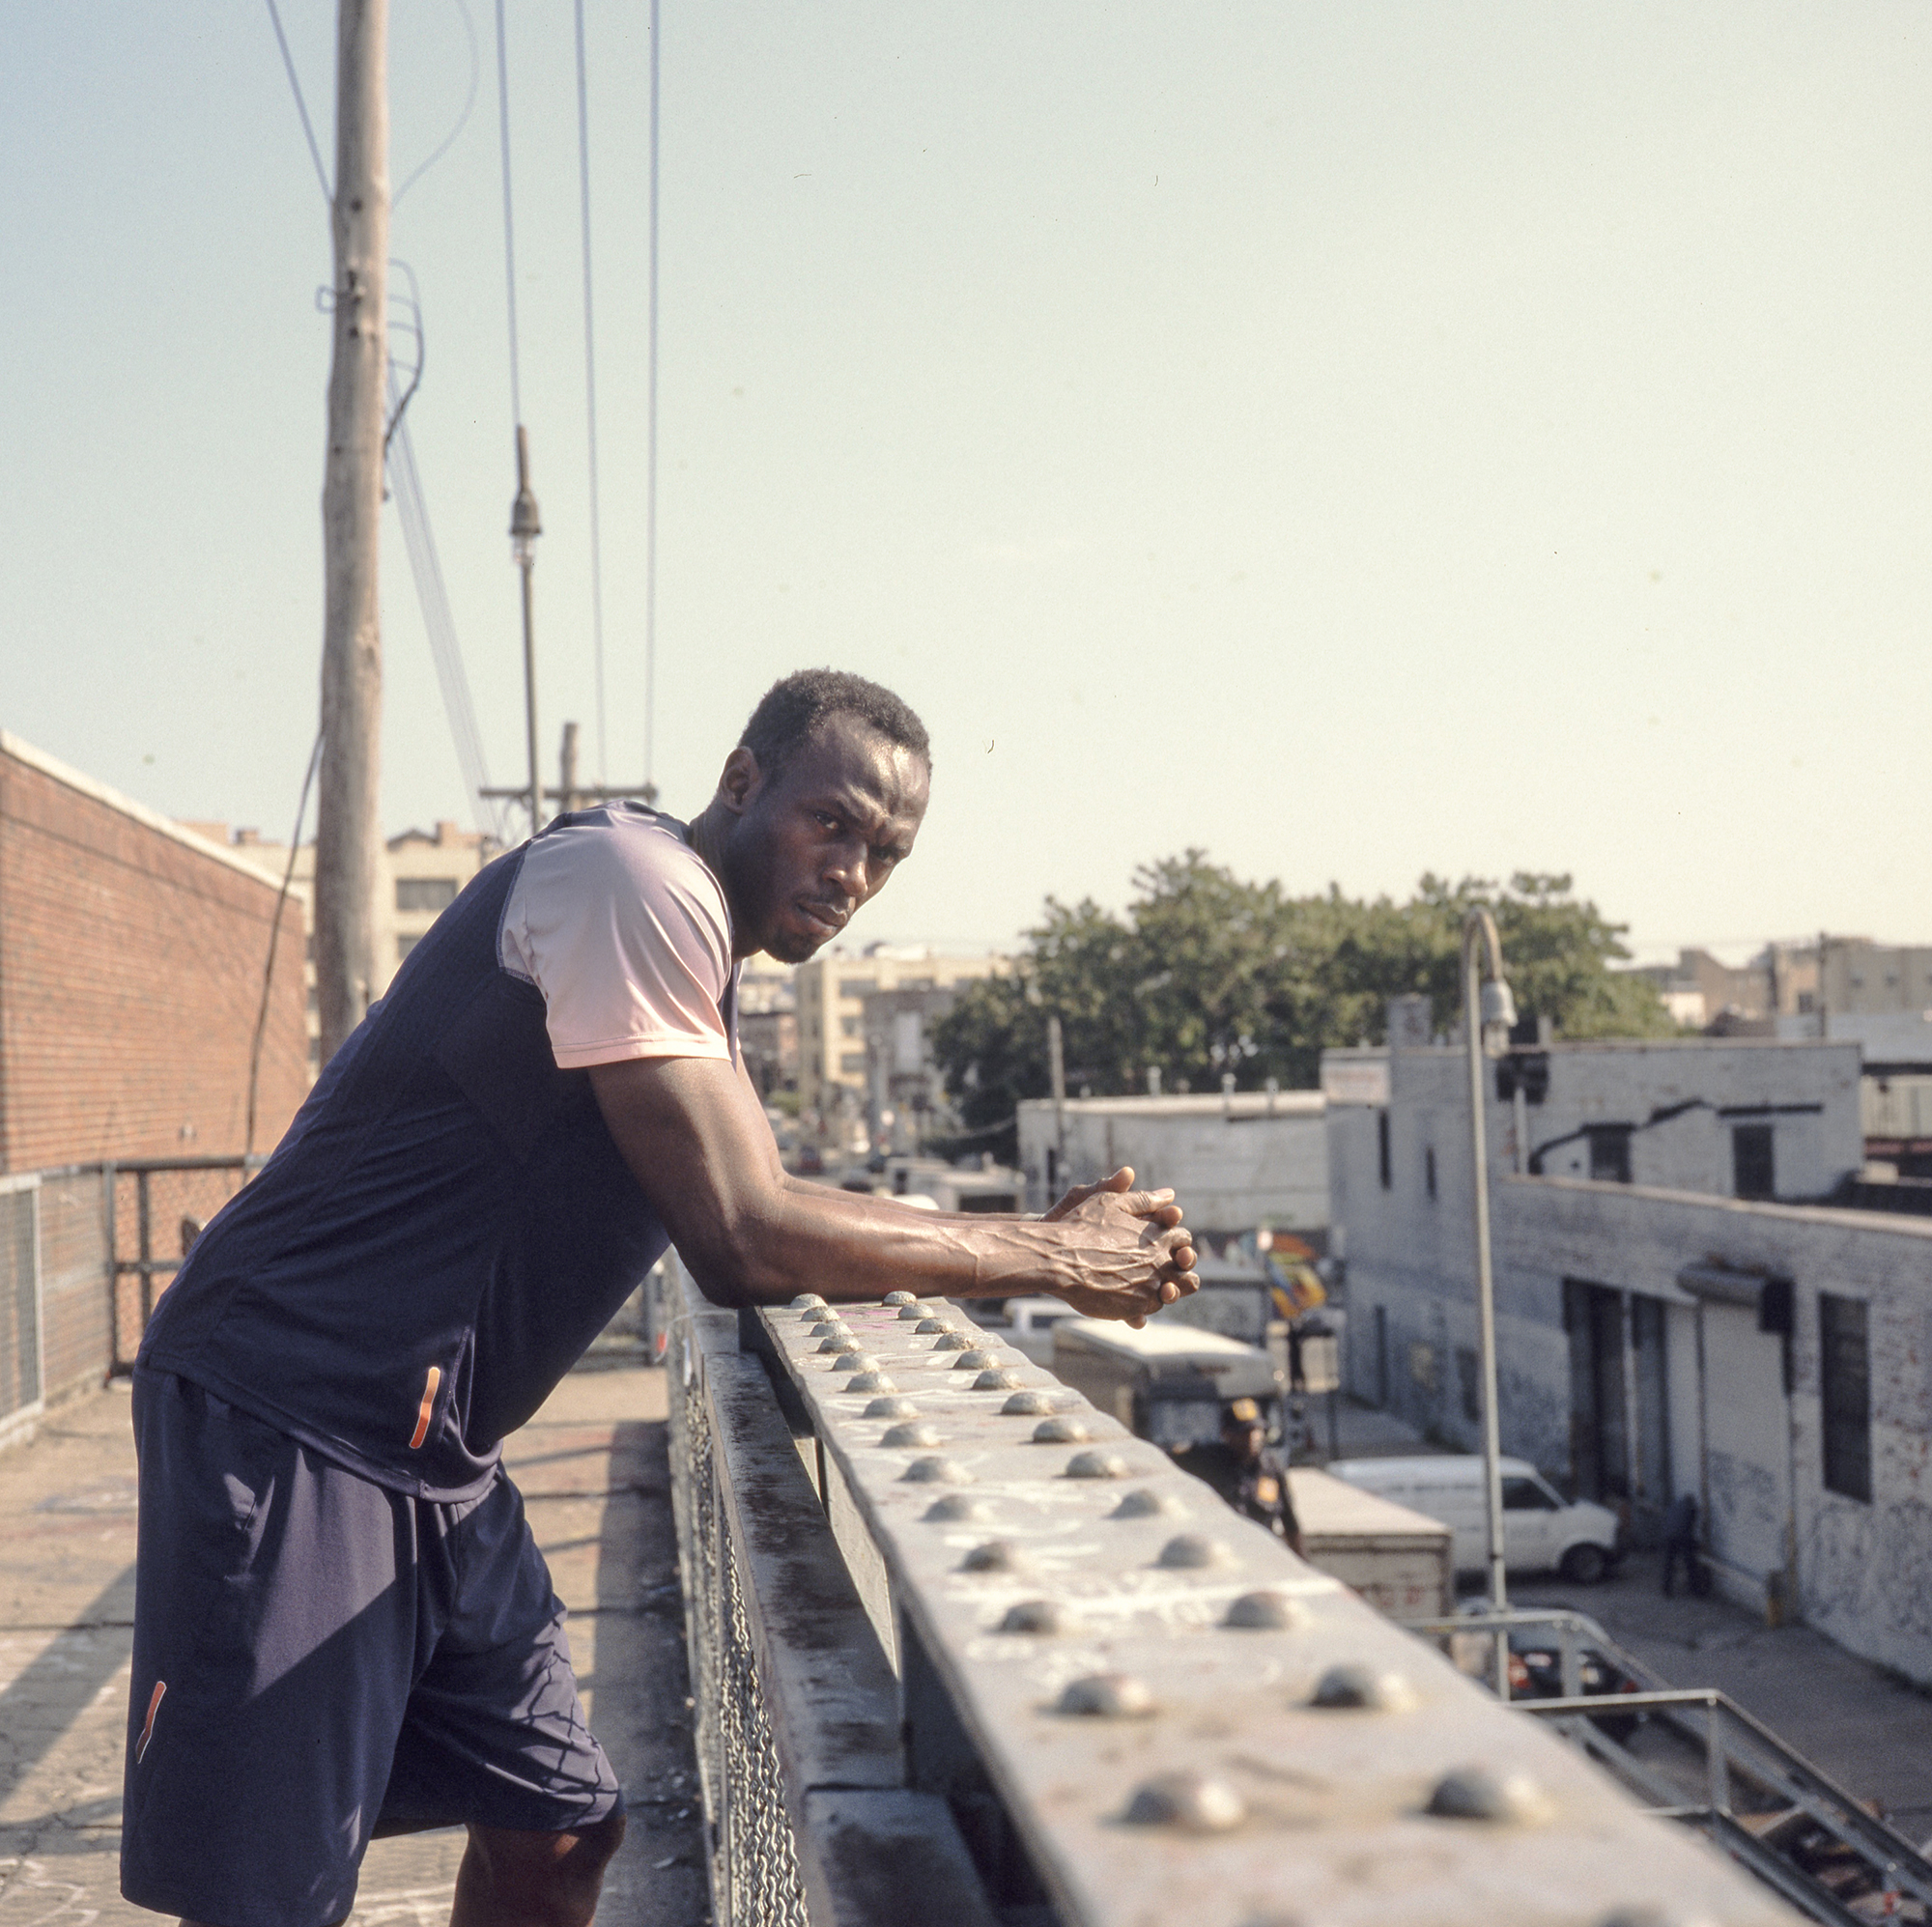 Usain Bolt for PUMA in New York Portrait